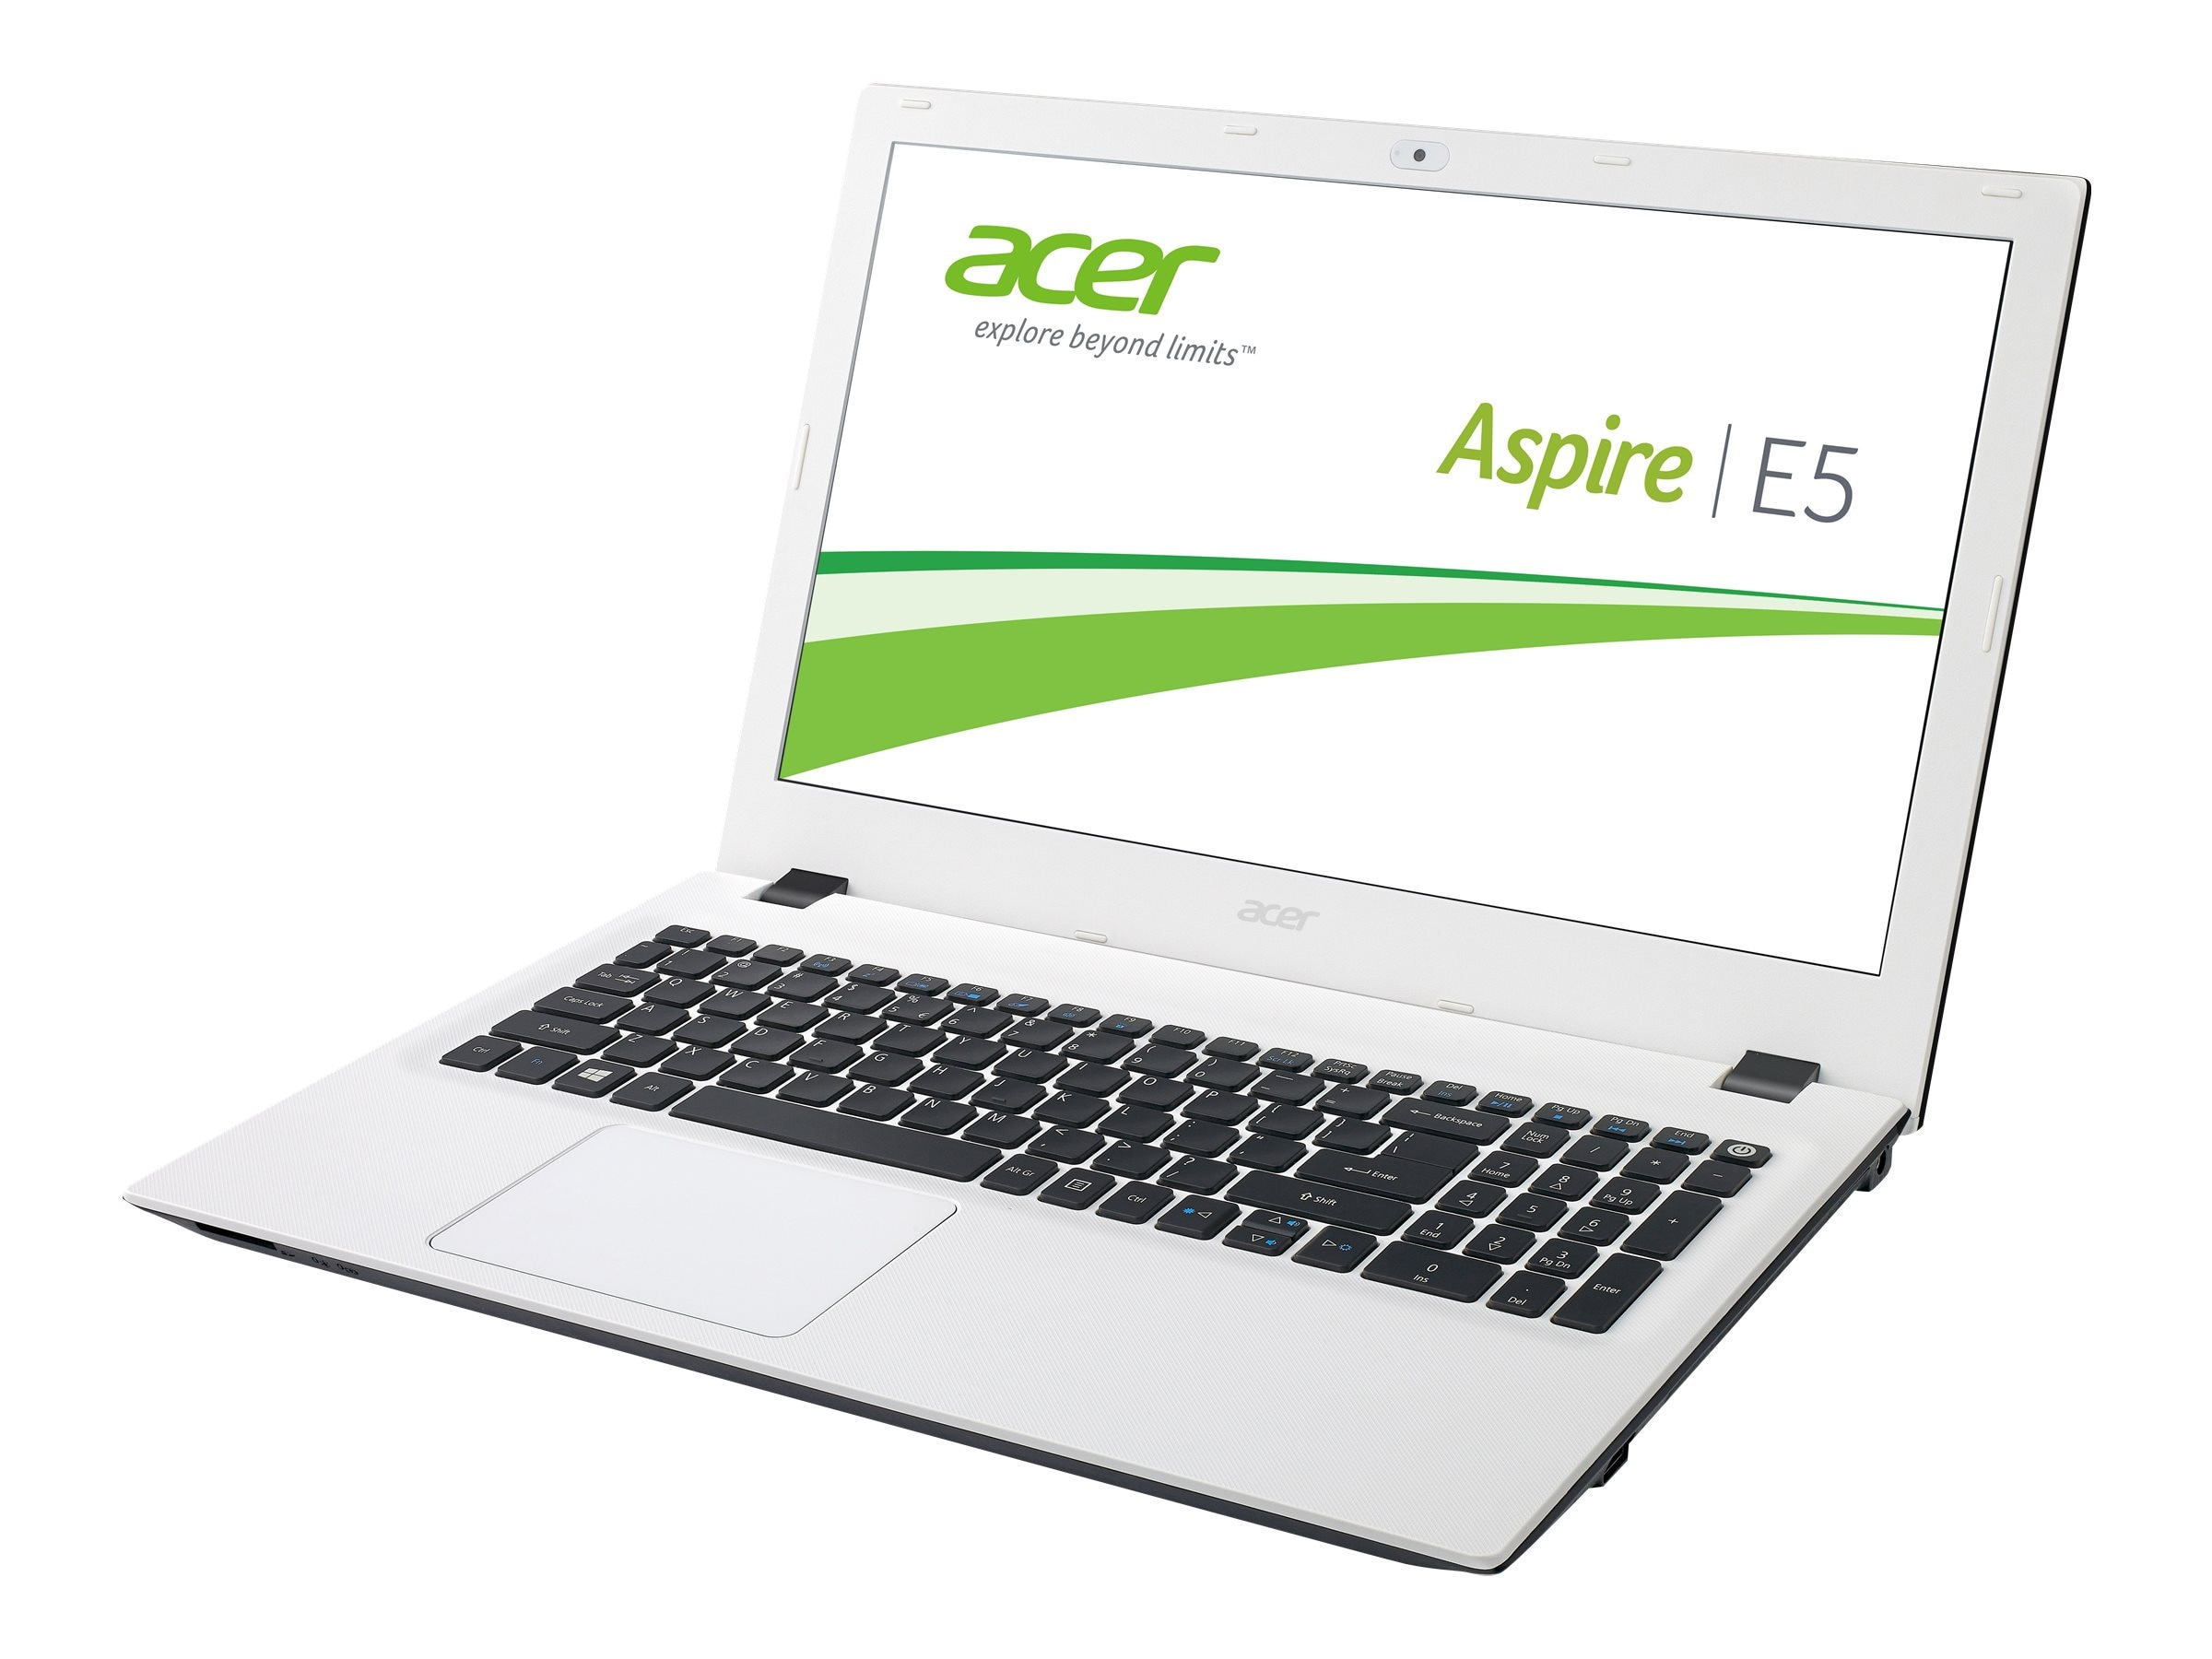 Acer Notebook PC Core Core i5-5200U 8GB 1TB 15, NX.MW2AA.004, 30736107, Notebooks